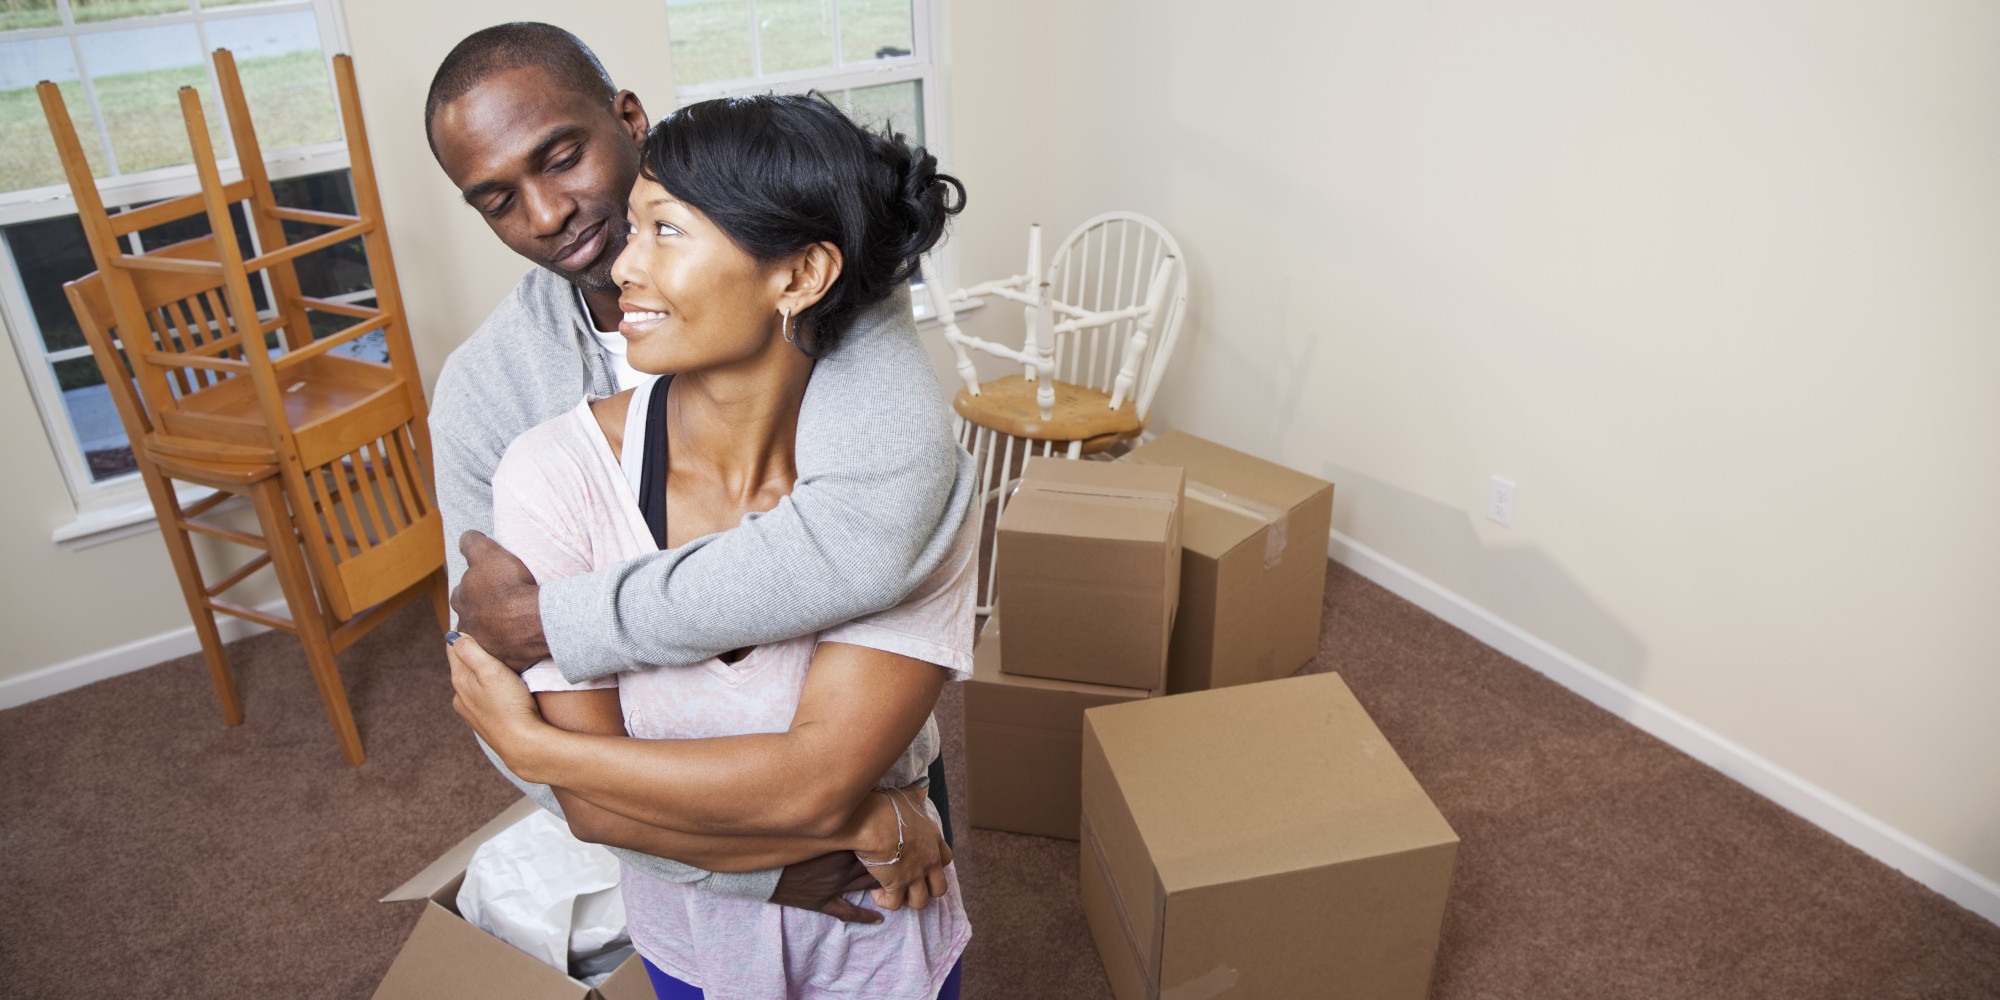 should you live together before getting engaged